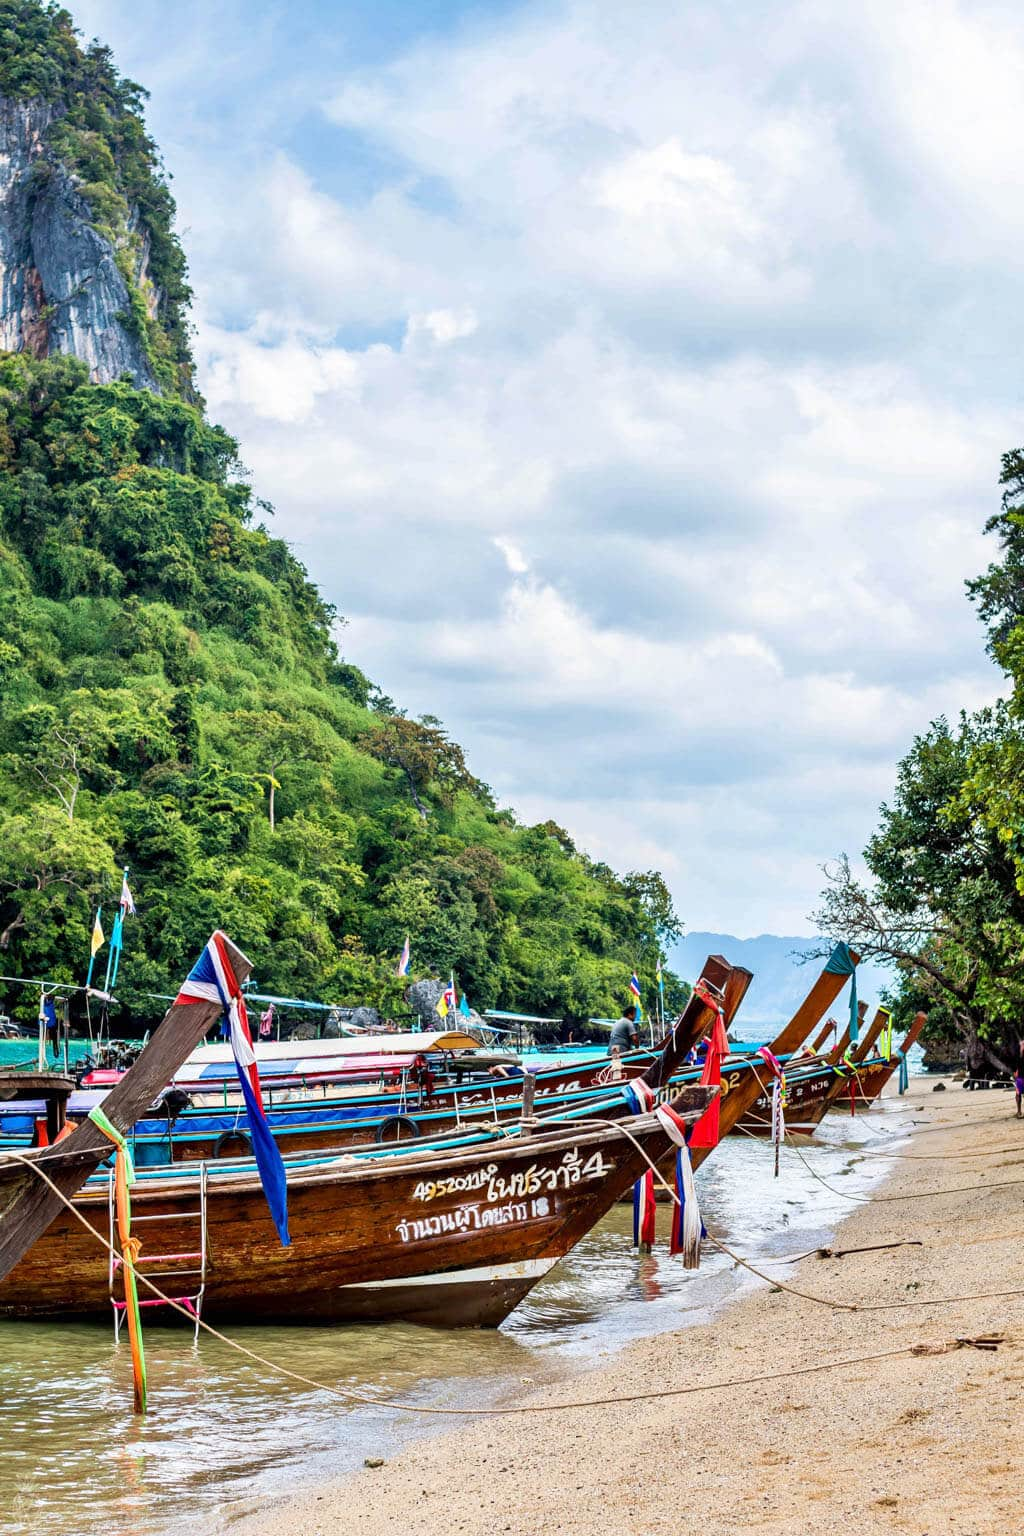 20 Photos to Inspire You to Visit Phuket & Krabi